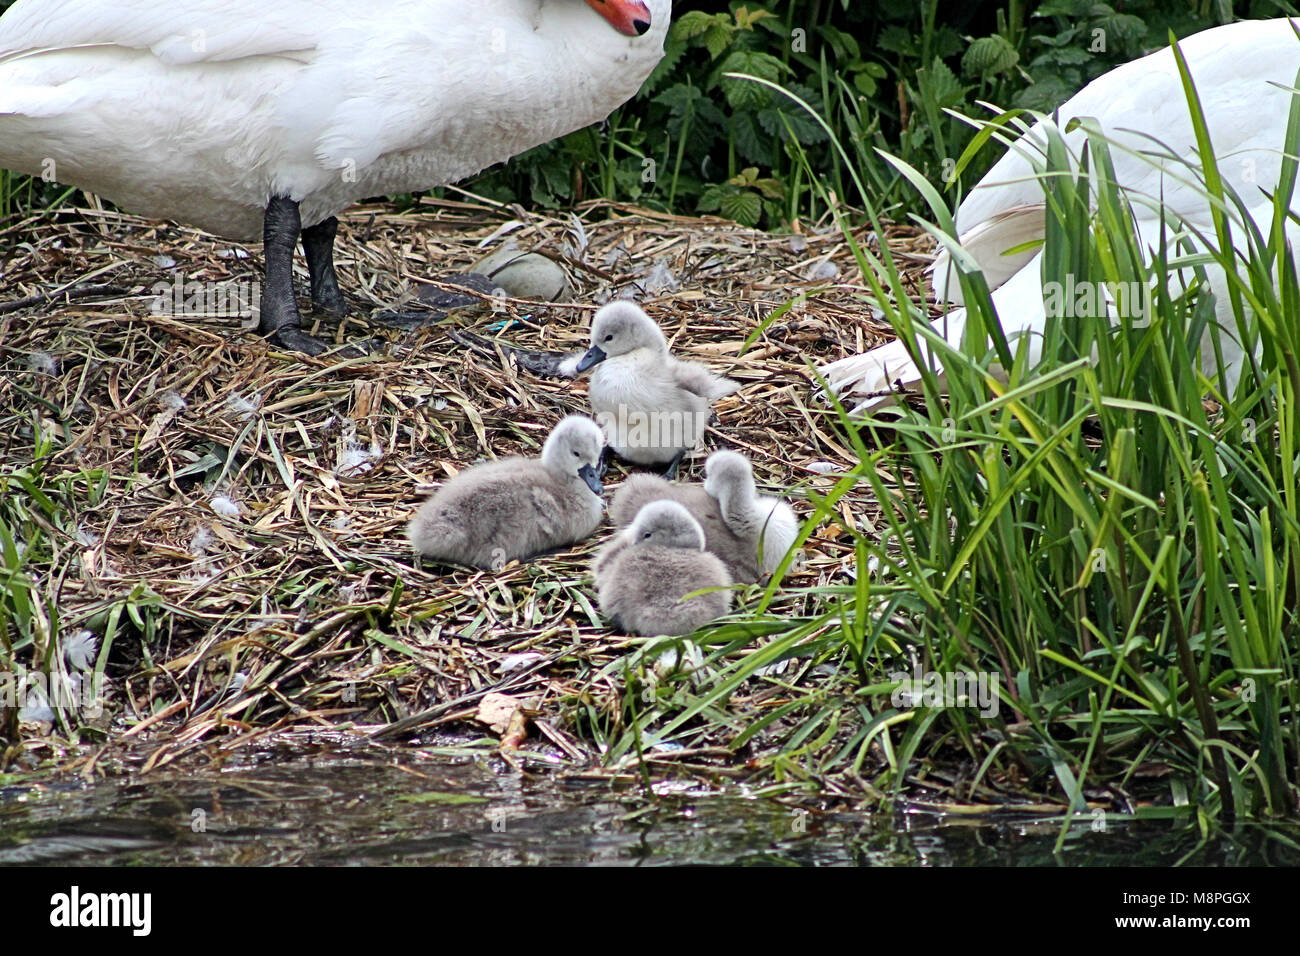 mute-swan-cygnus-olor-cygnets-on-the-nest-next-to-the-river-trent-M8PGGX.jpg